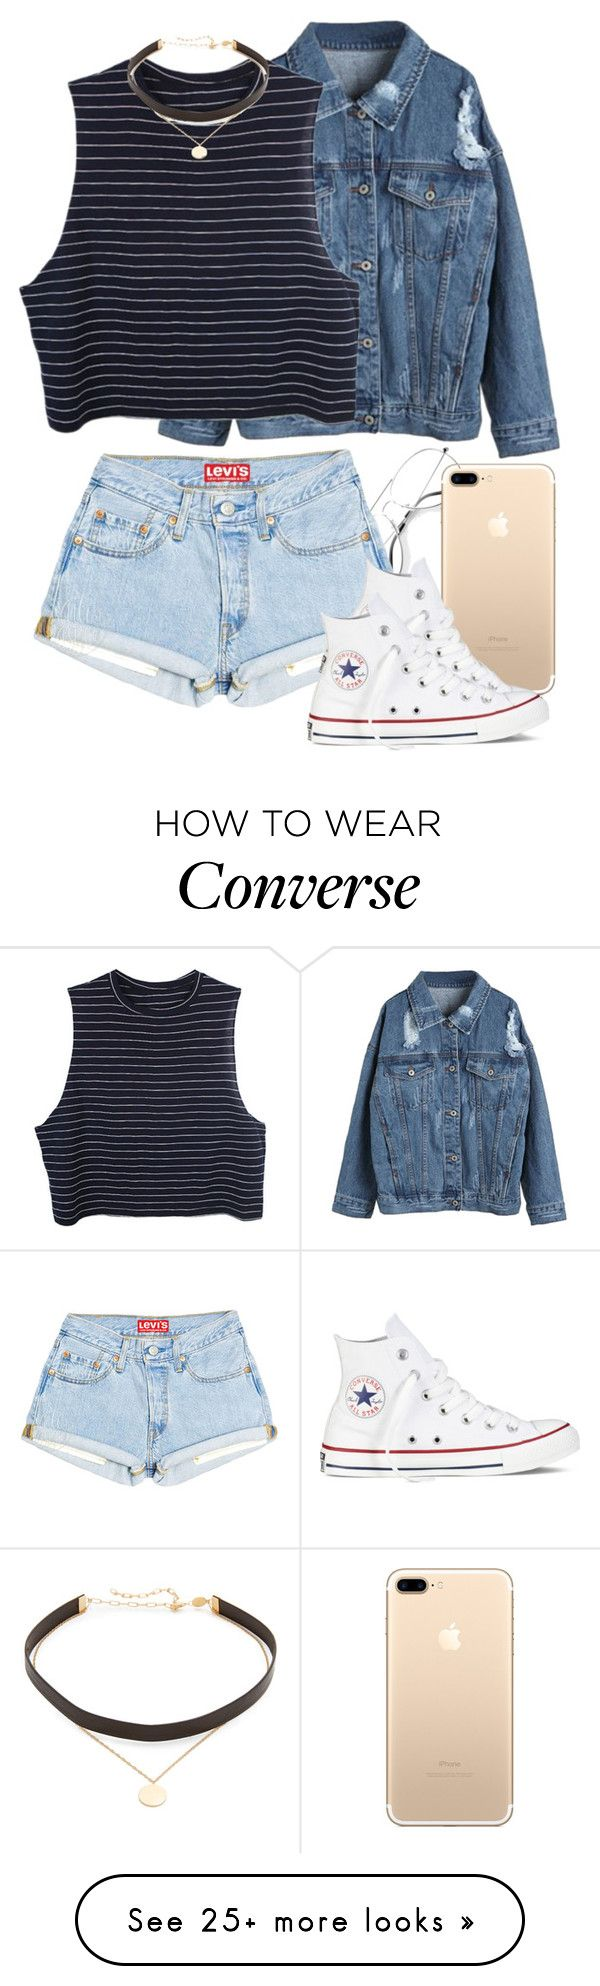 """Untitled #1268"" by natalia-viana-gtl on Polyvore featuring WithChic, Converse and Jennifer Zeuner"